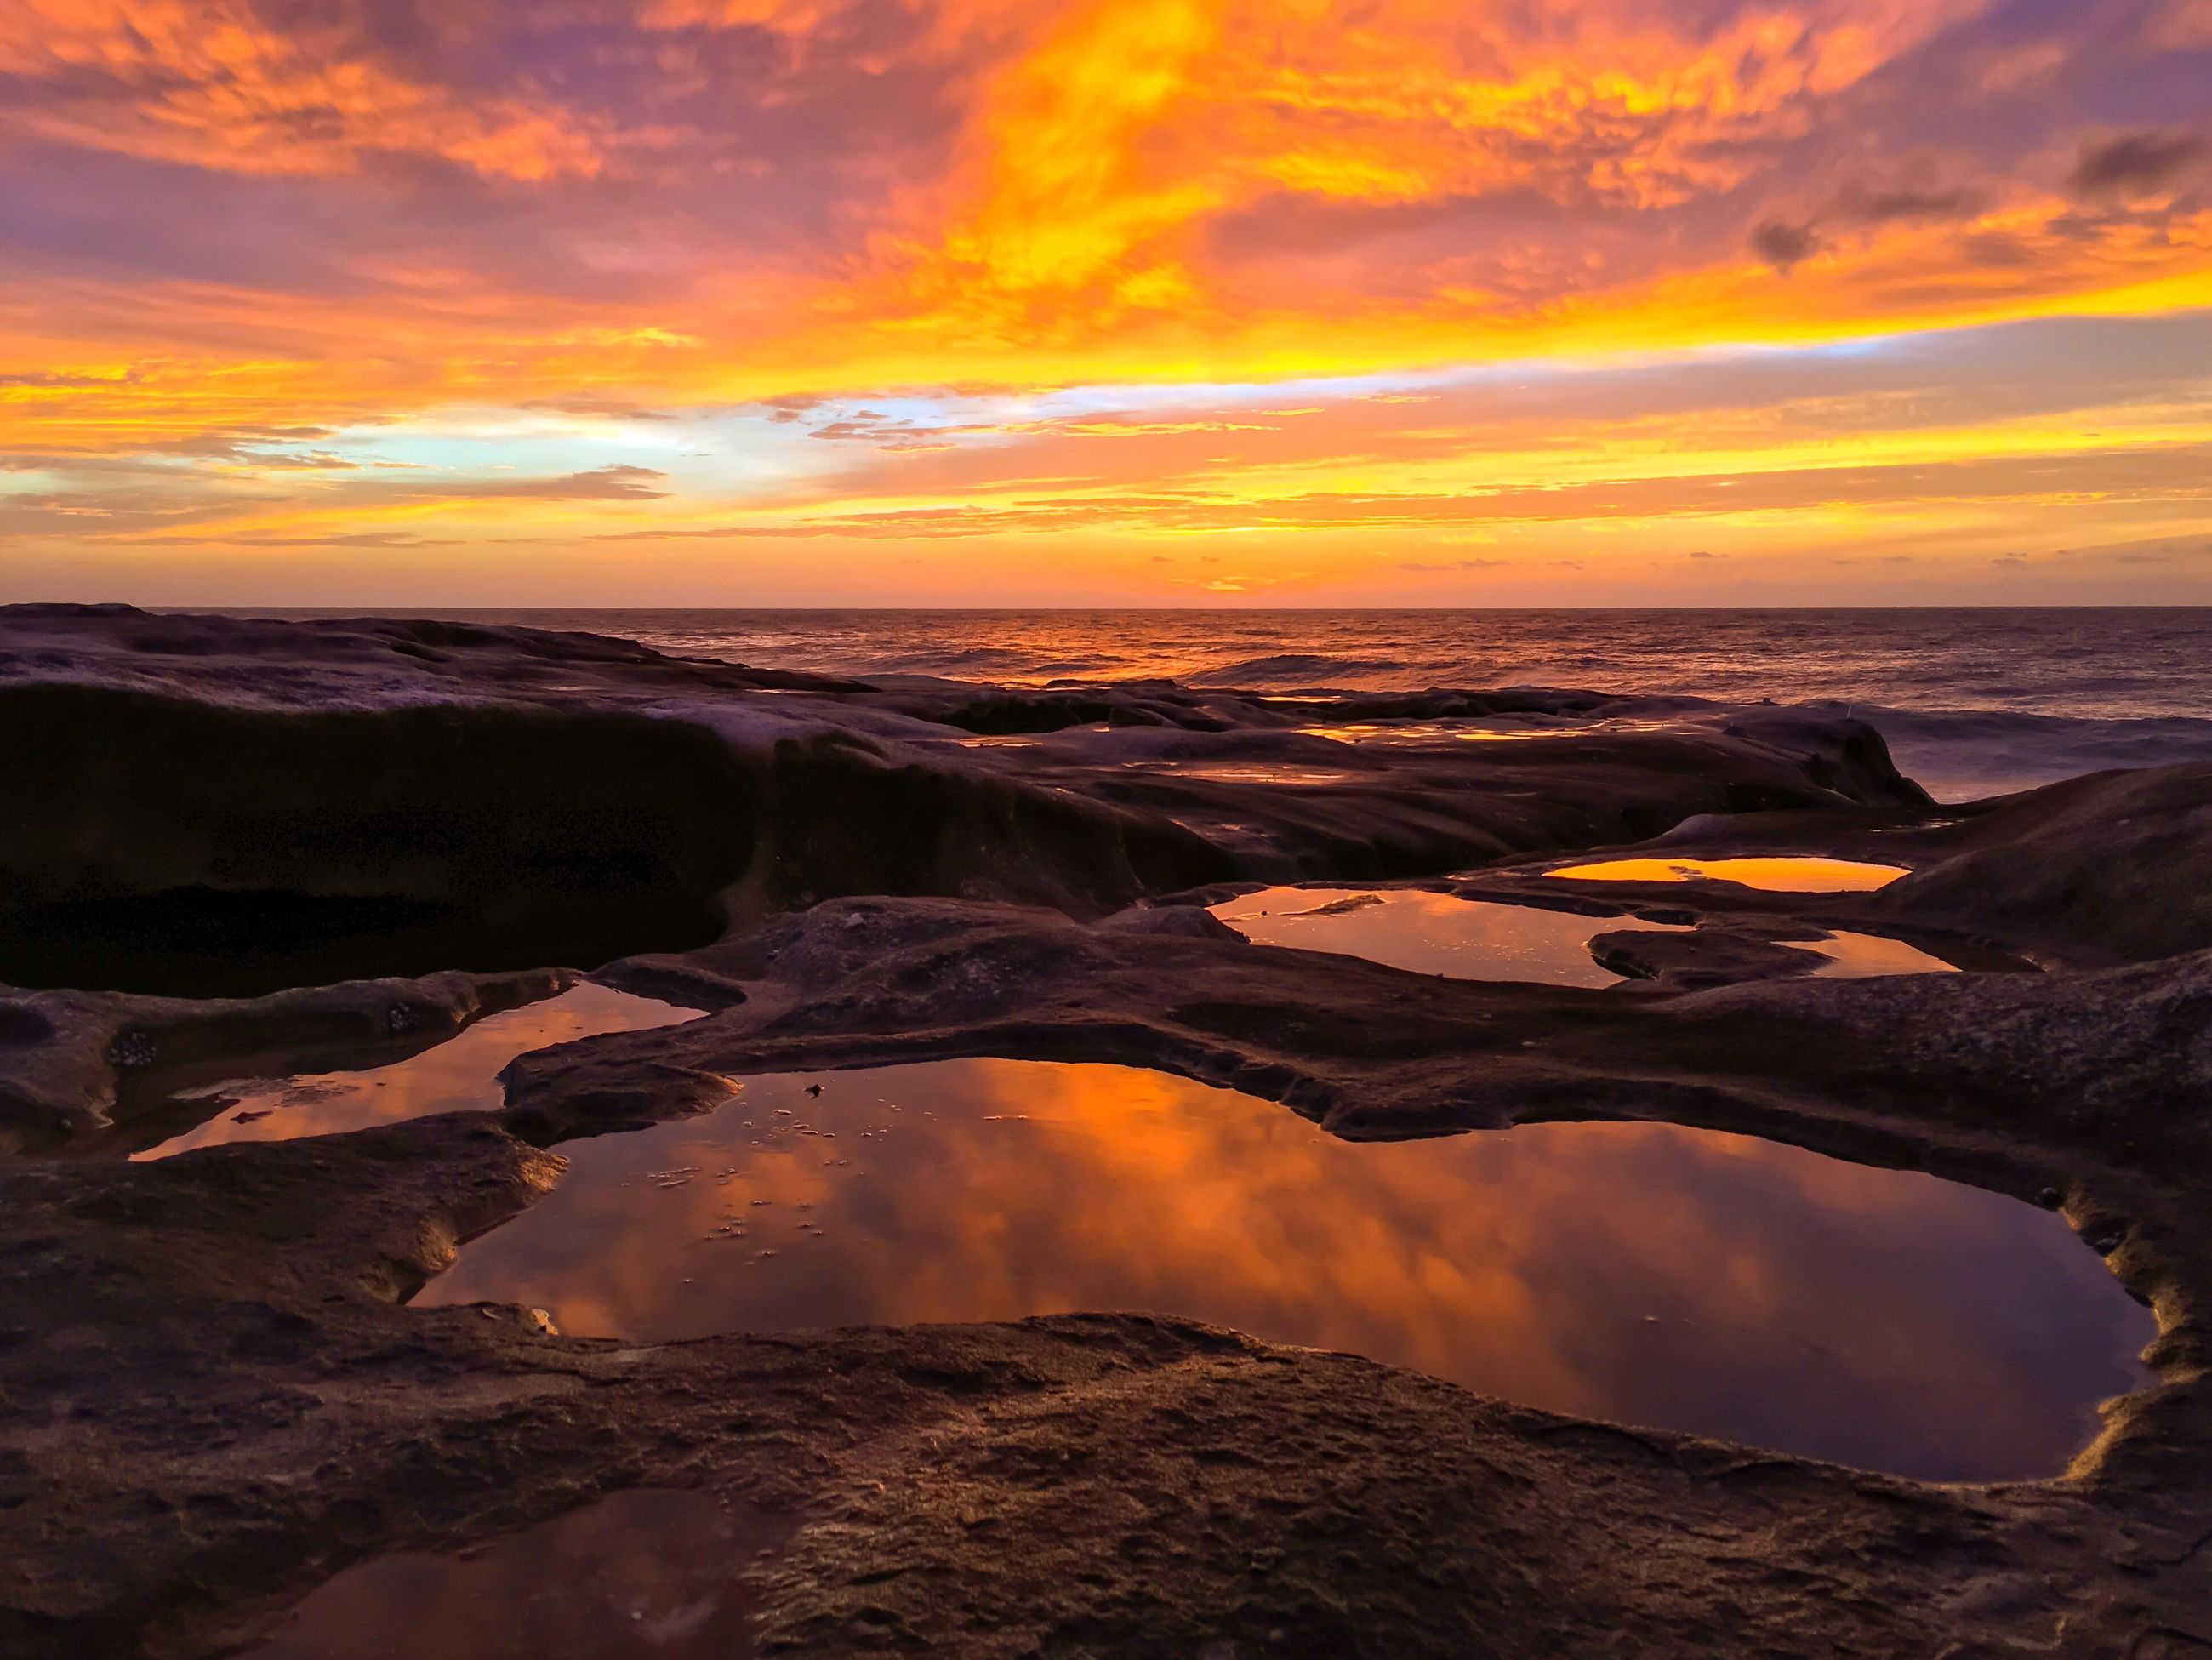 sunset, water, scenics, sea, horizon over water, beach, tranquil scene, beauty in nature, orange color, cloud - sky, idyllic, dramatic sky, tranquility, sky, atmospheric mood, nature, shore, majestic, non-urban scene, romantic sky, reflection, remote, atmosphere, calm, seascape, vibrant color, cloudy, outdoors, wave, tide